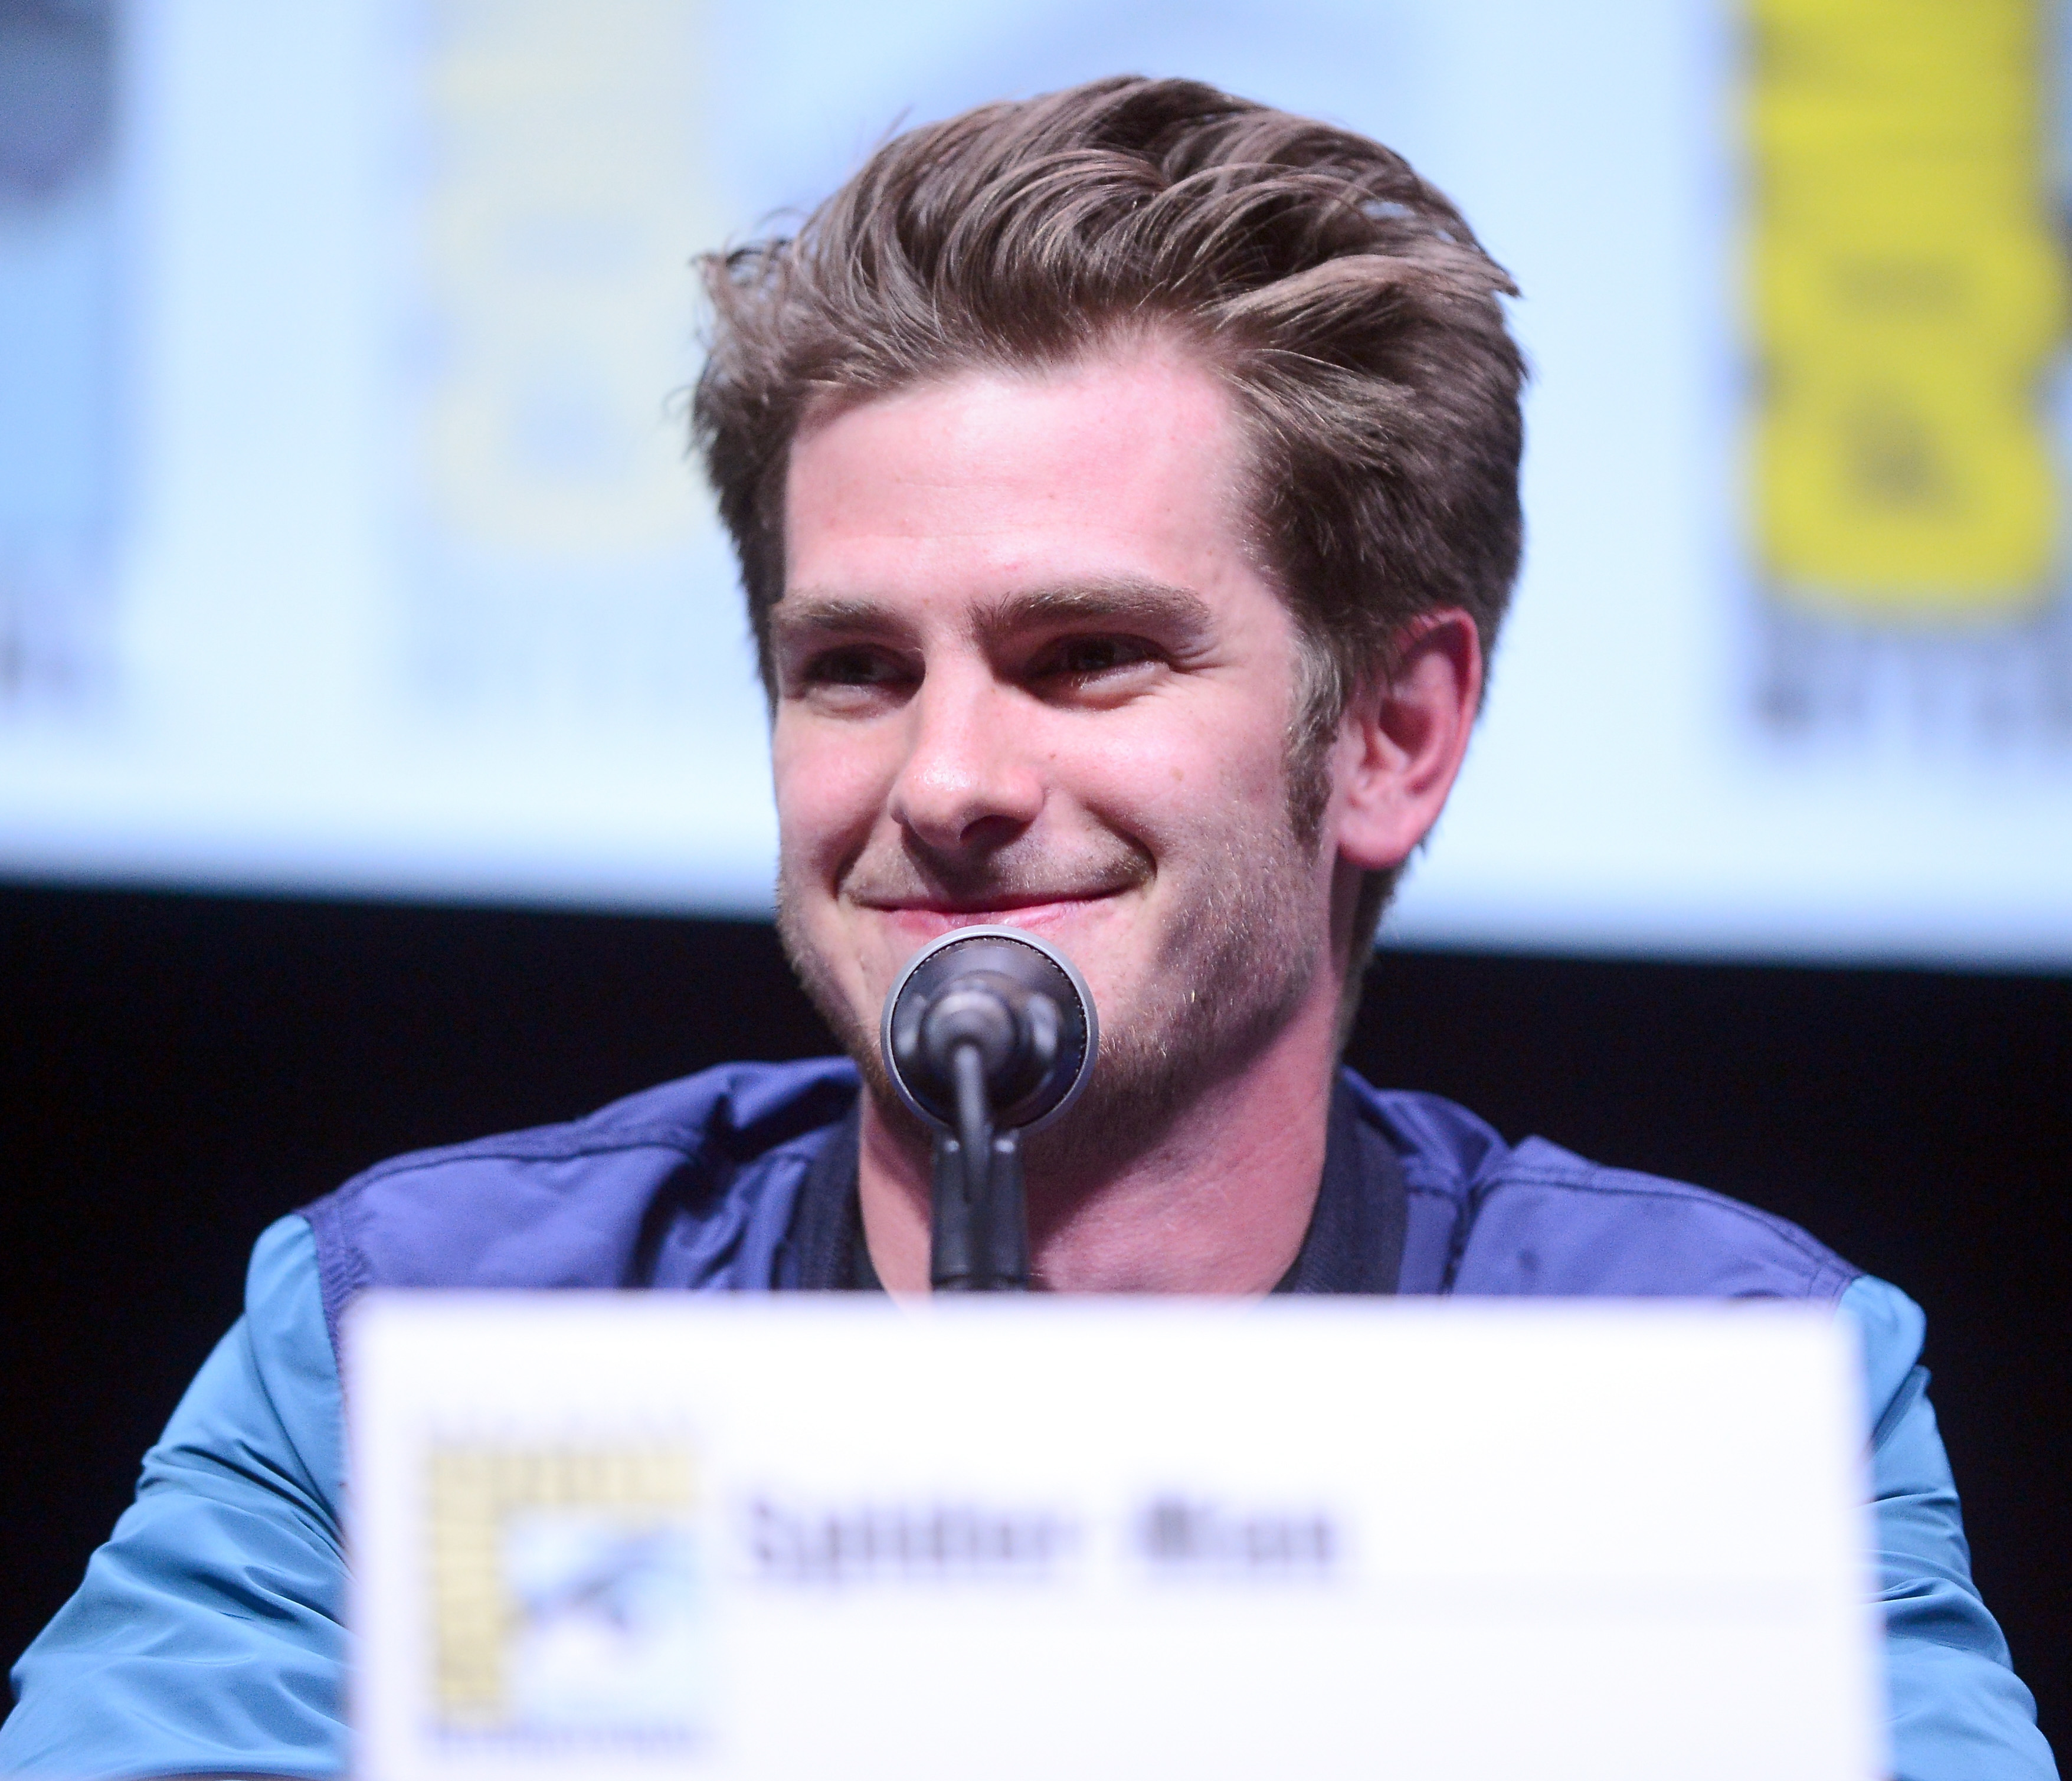 Andrew Garfield attends The Sony and Screen Gems Panelsl as part of Comic-Con International 2013 held at San Diego Convention Center on Friday July 19, 2012 in San Diego, California.